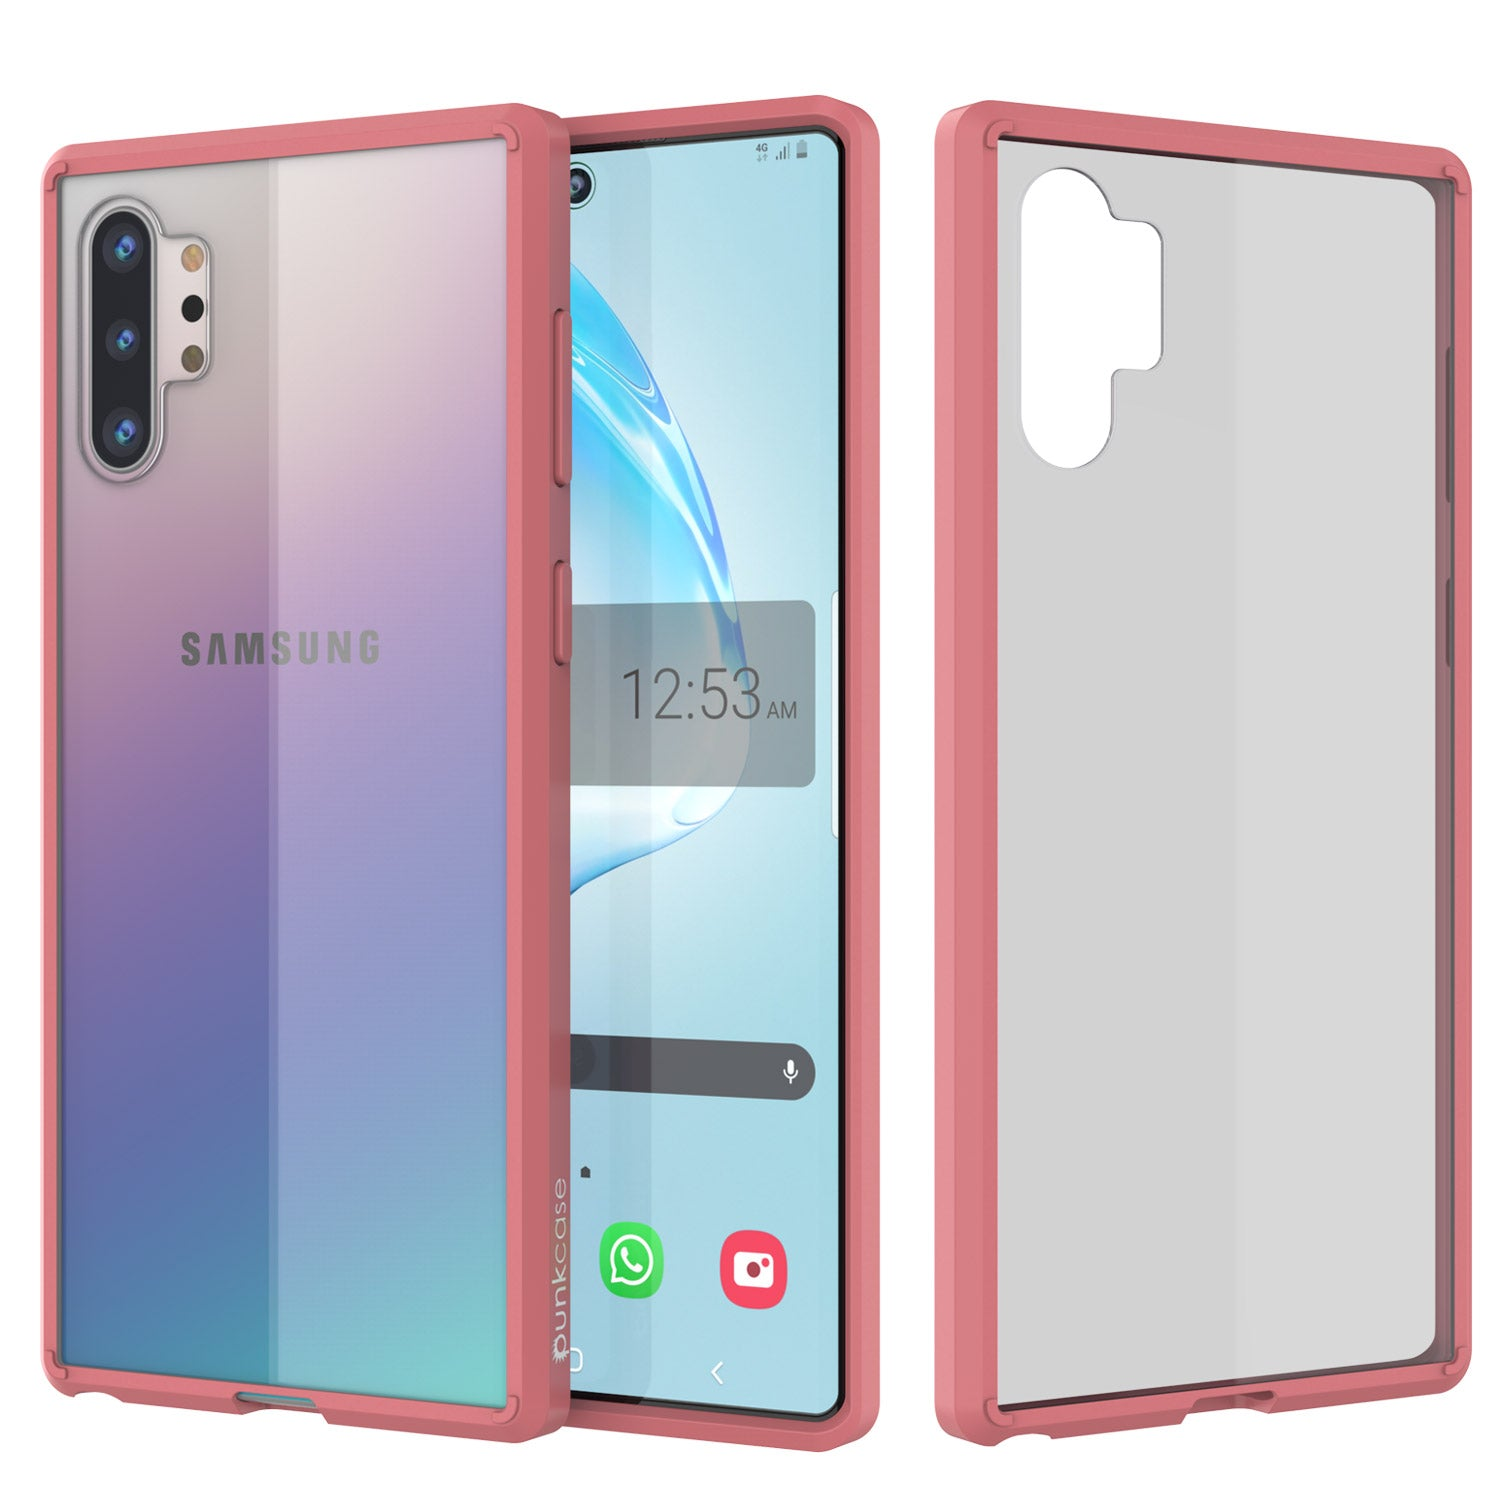 Galaxy Note 10+ Plus Punkcase Lucid-2.0 Series Slim Fit Armor Crystal Pink Case Cover